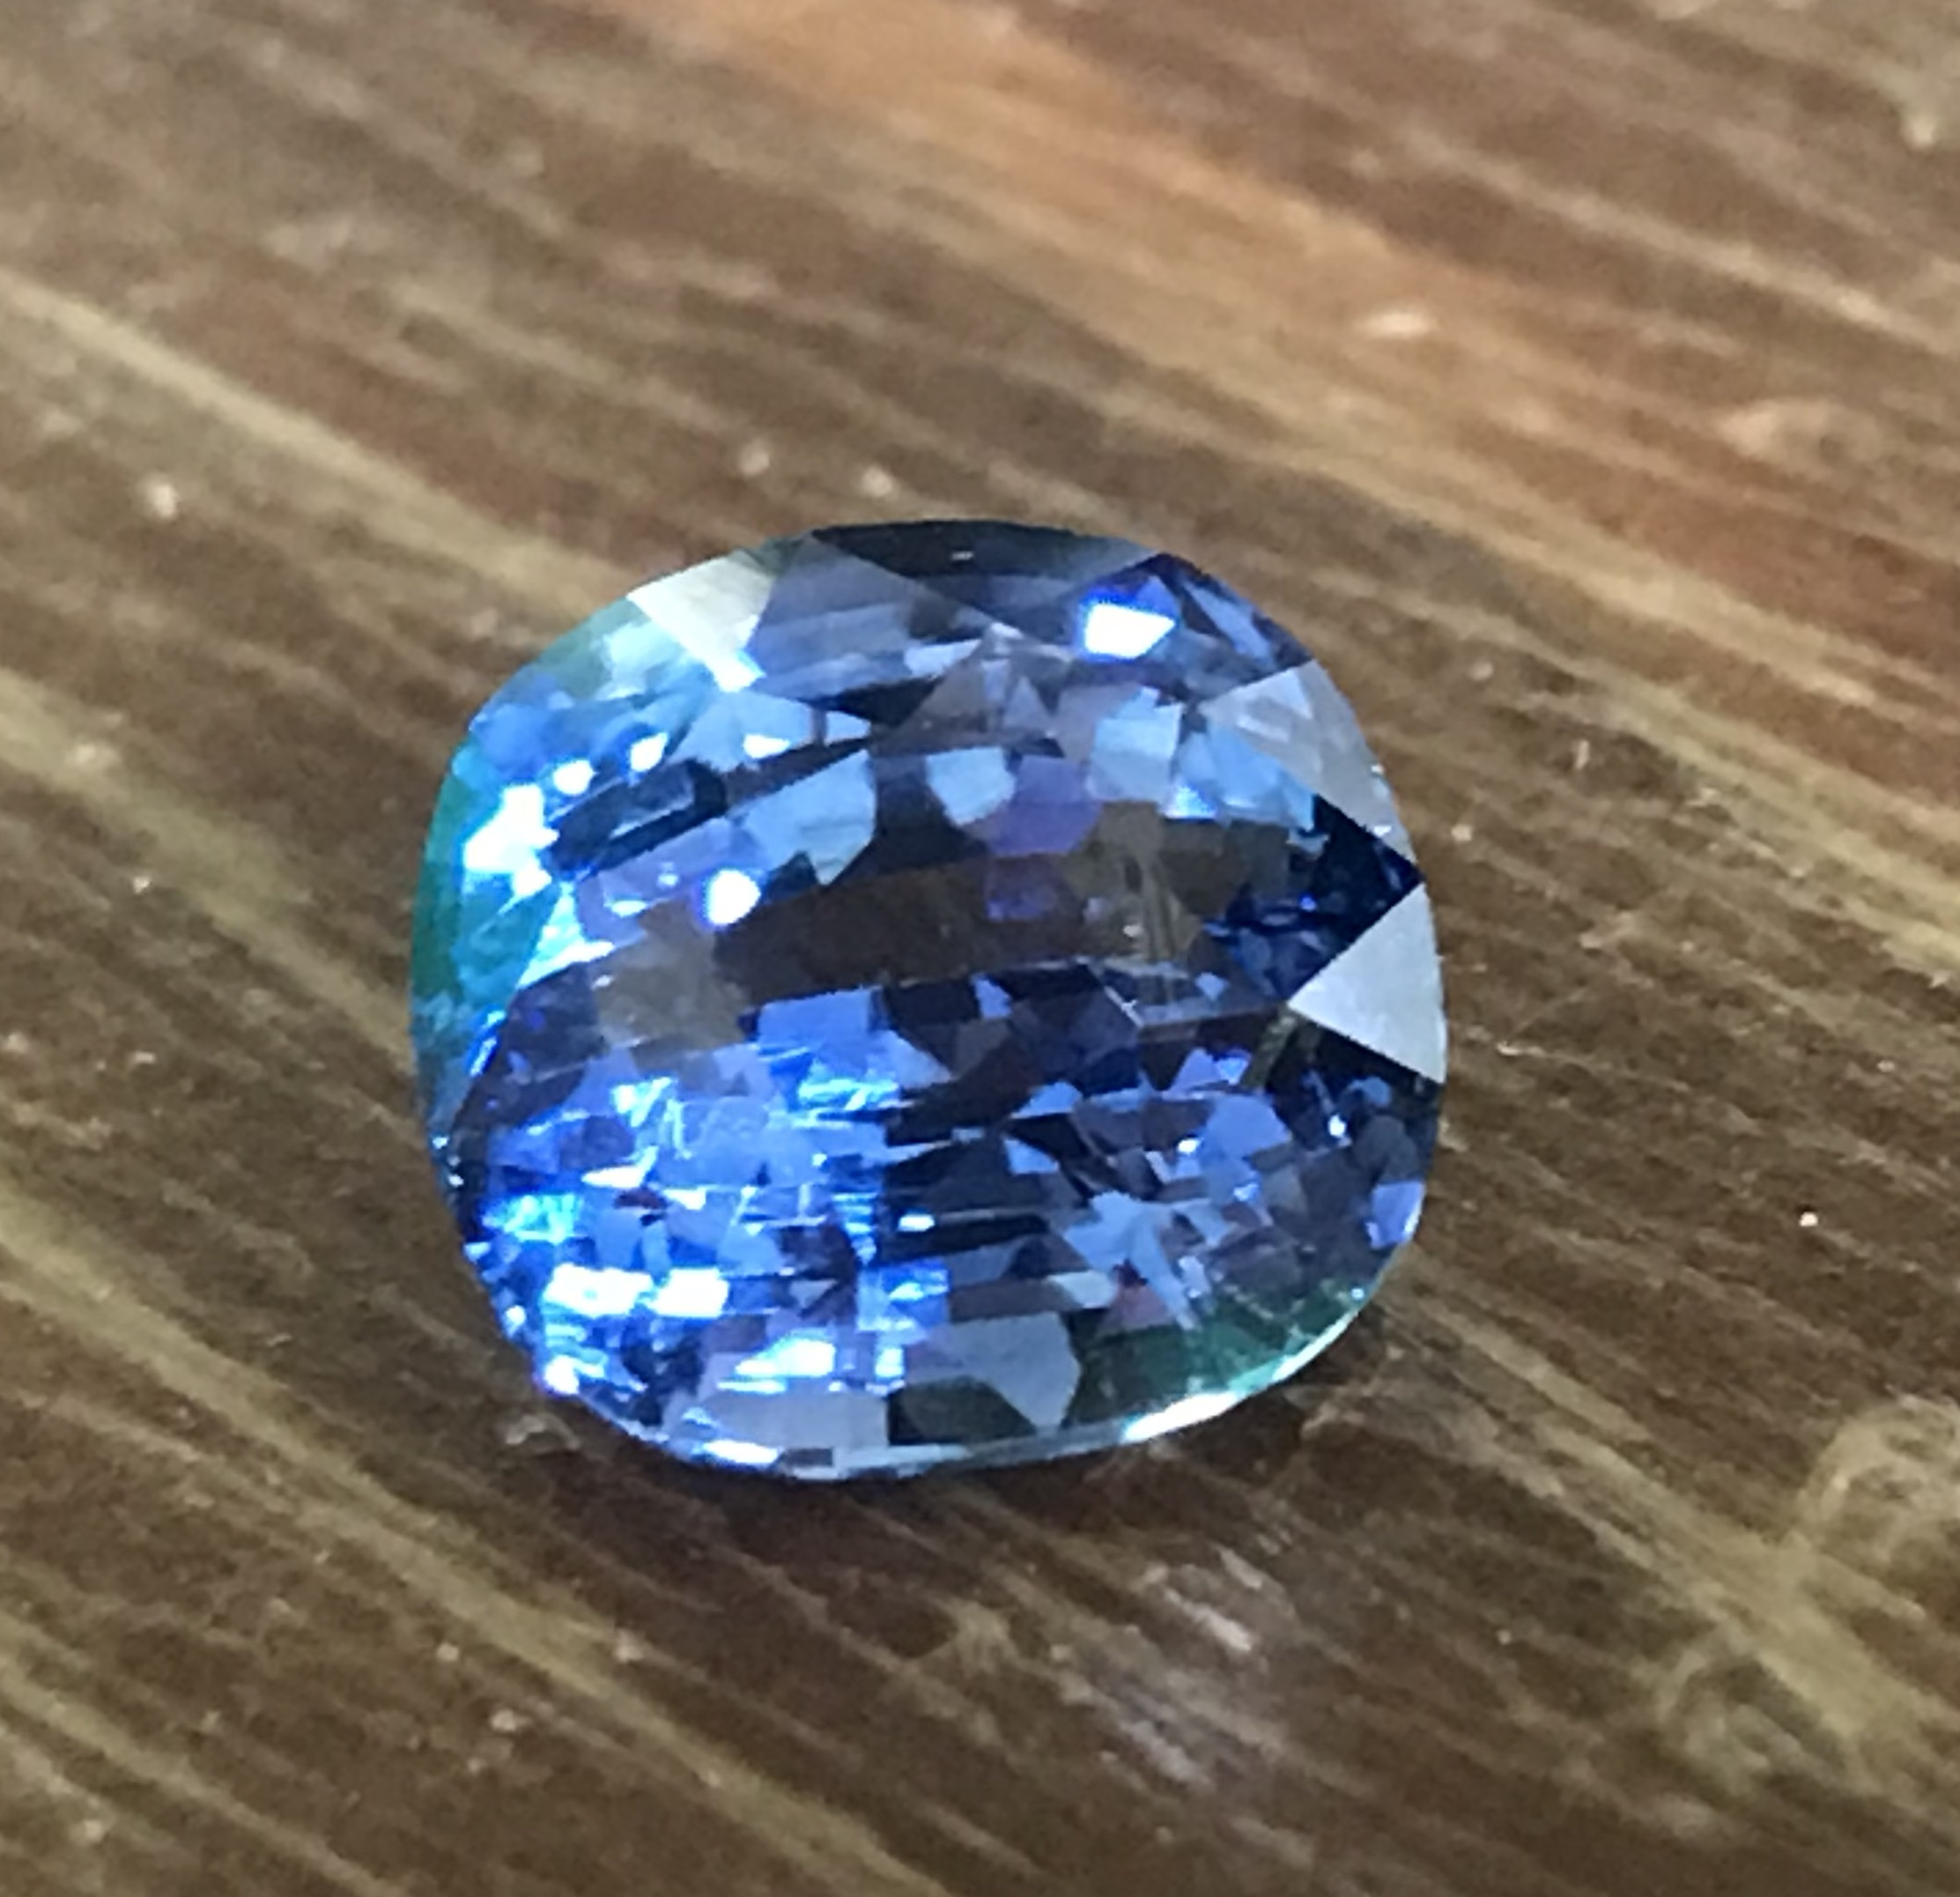 Blue Sapphire, 4.78 Ct - Image 2 of 6